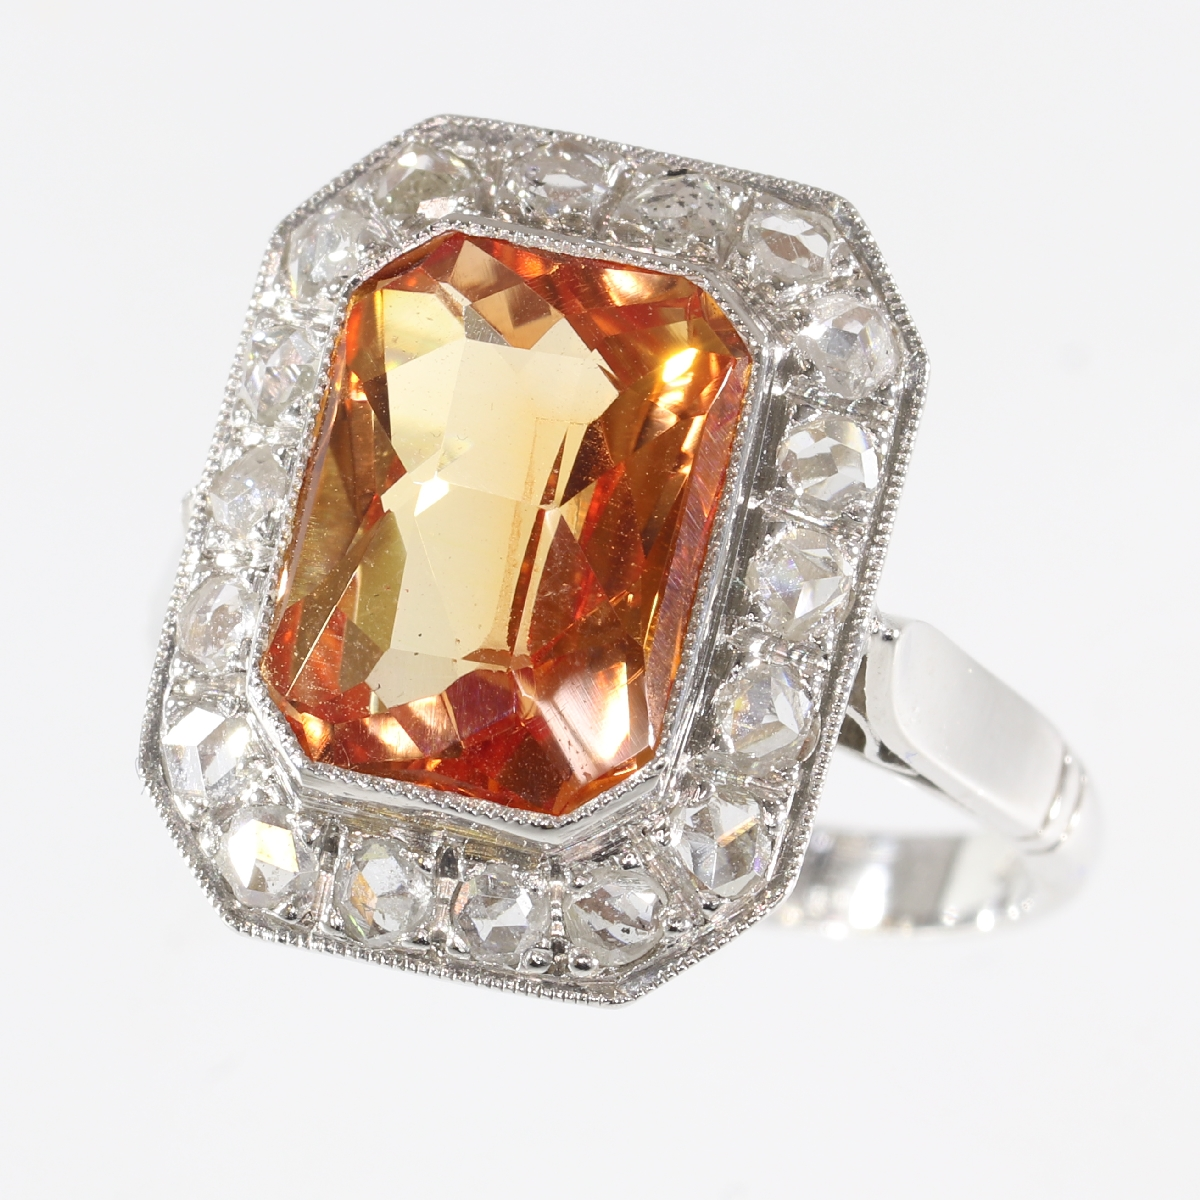 Estate rose cut diamonds ring with Verneuil padparadscha sapphire